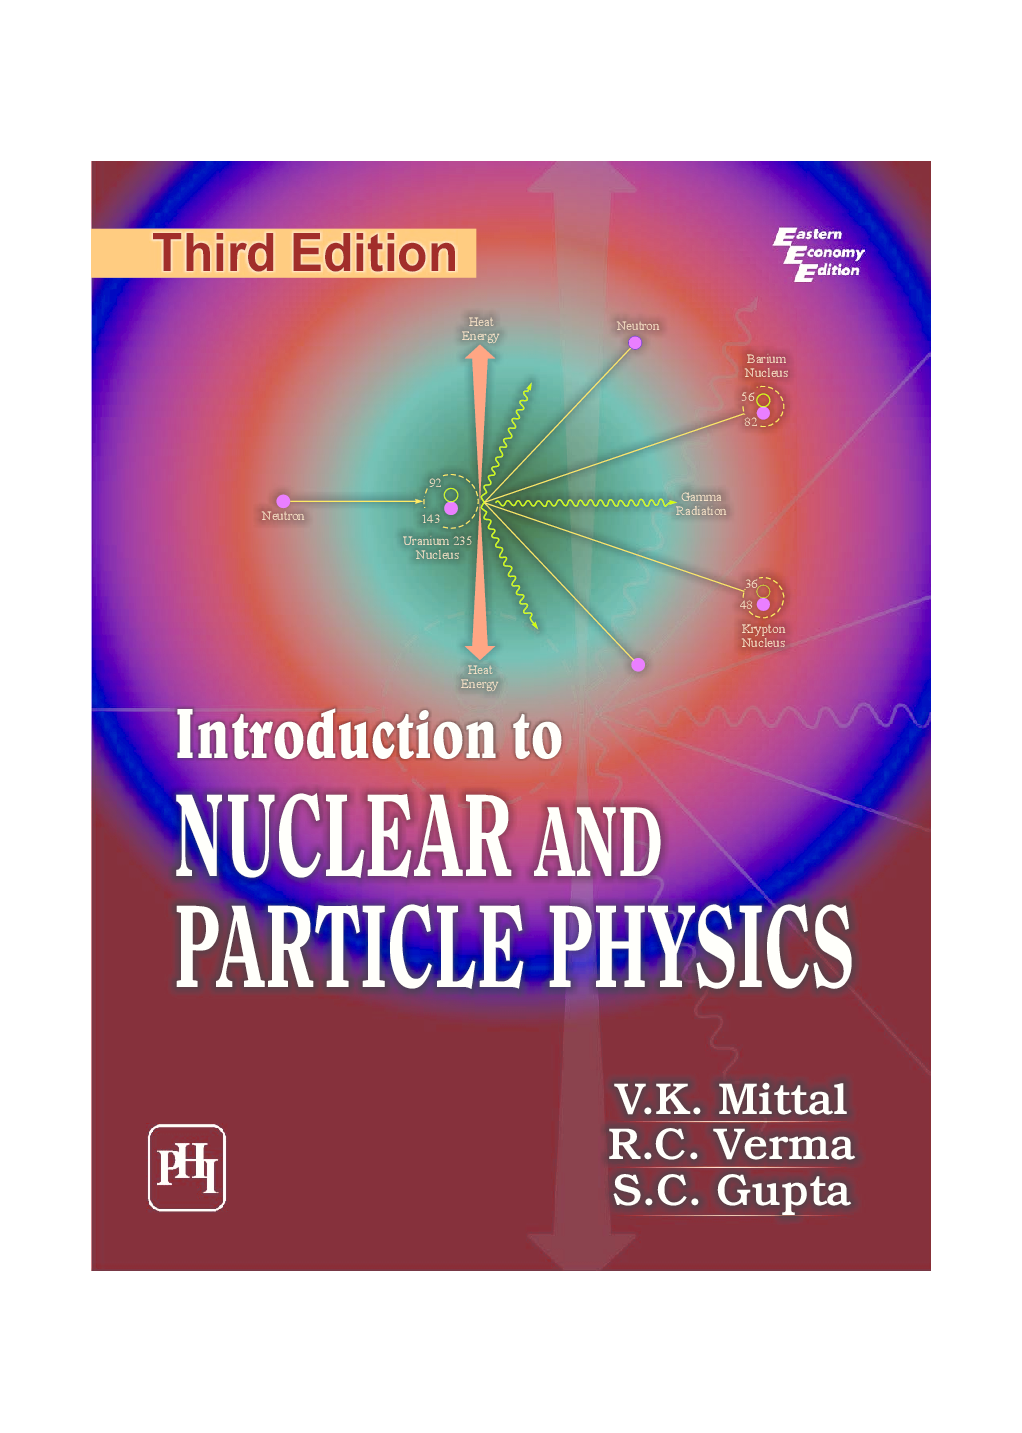 introduction to physics pdf